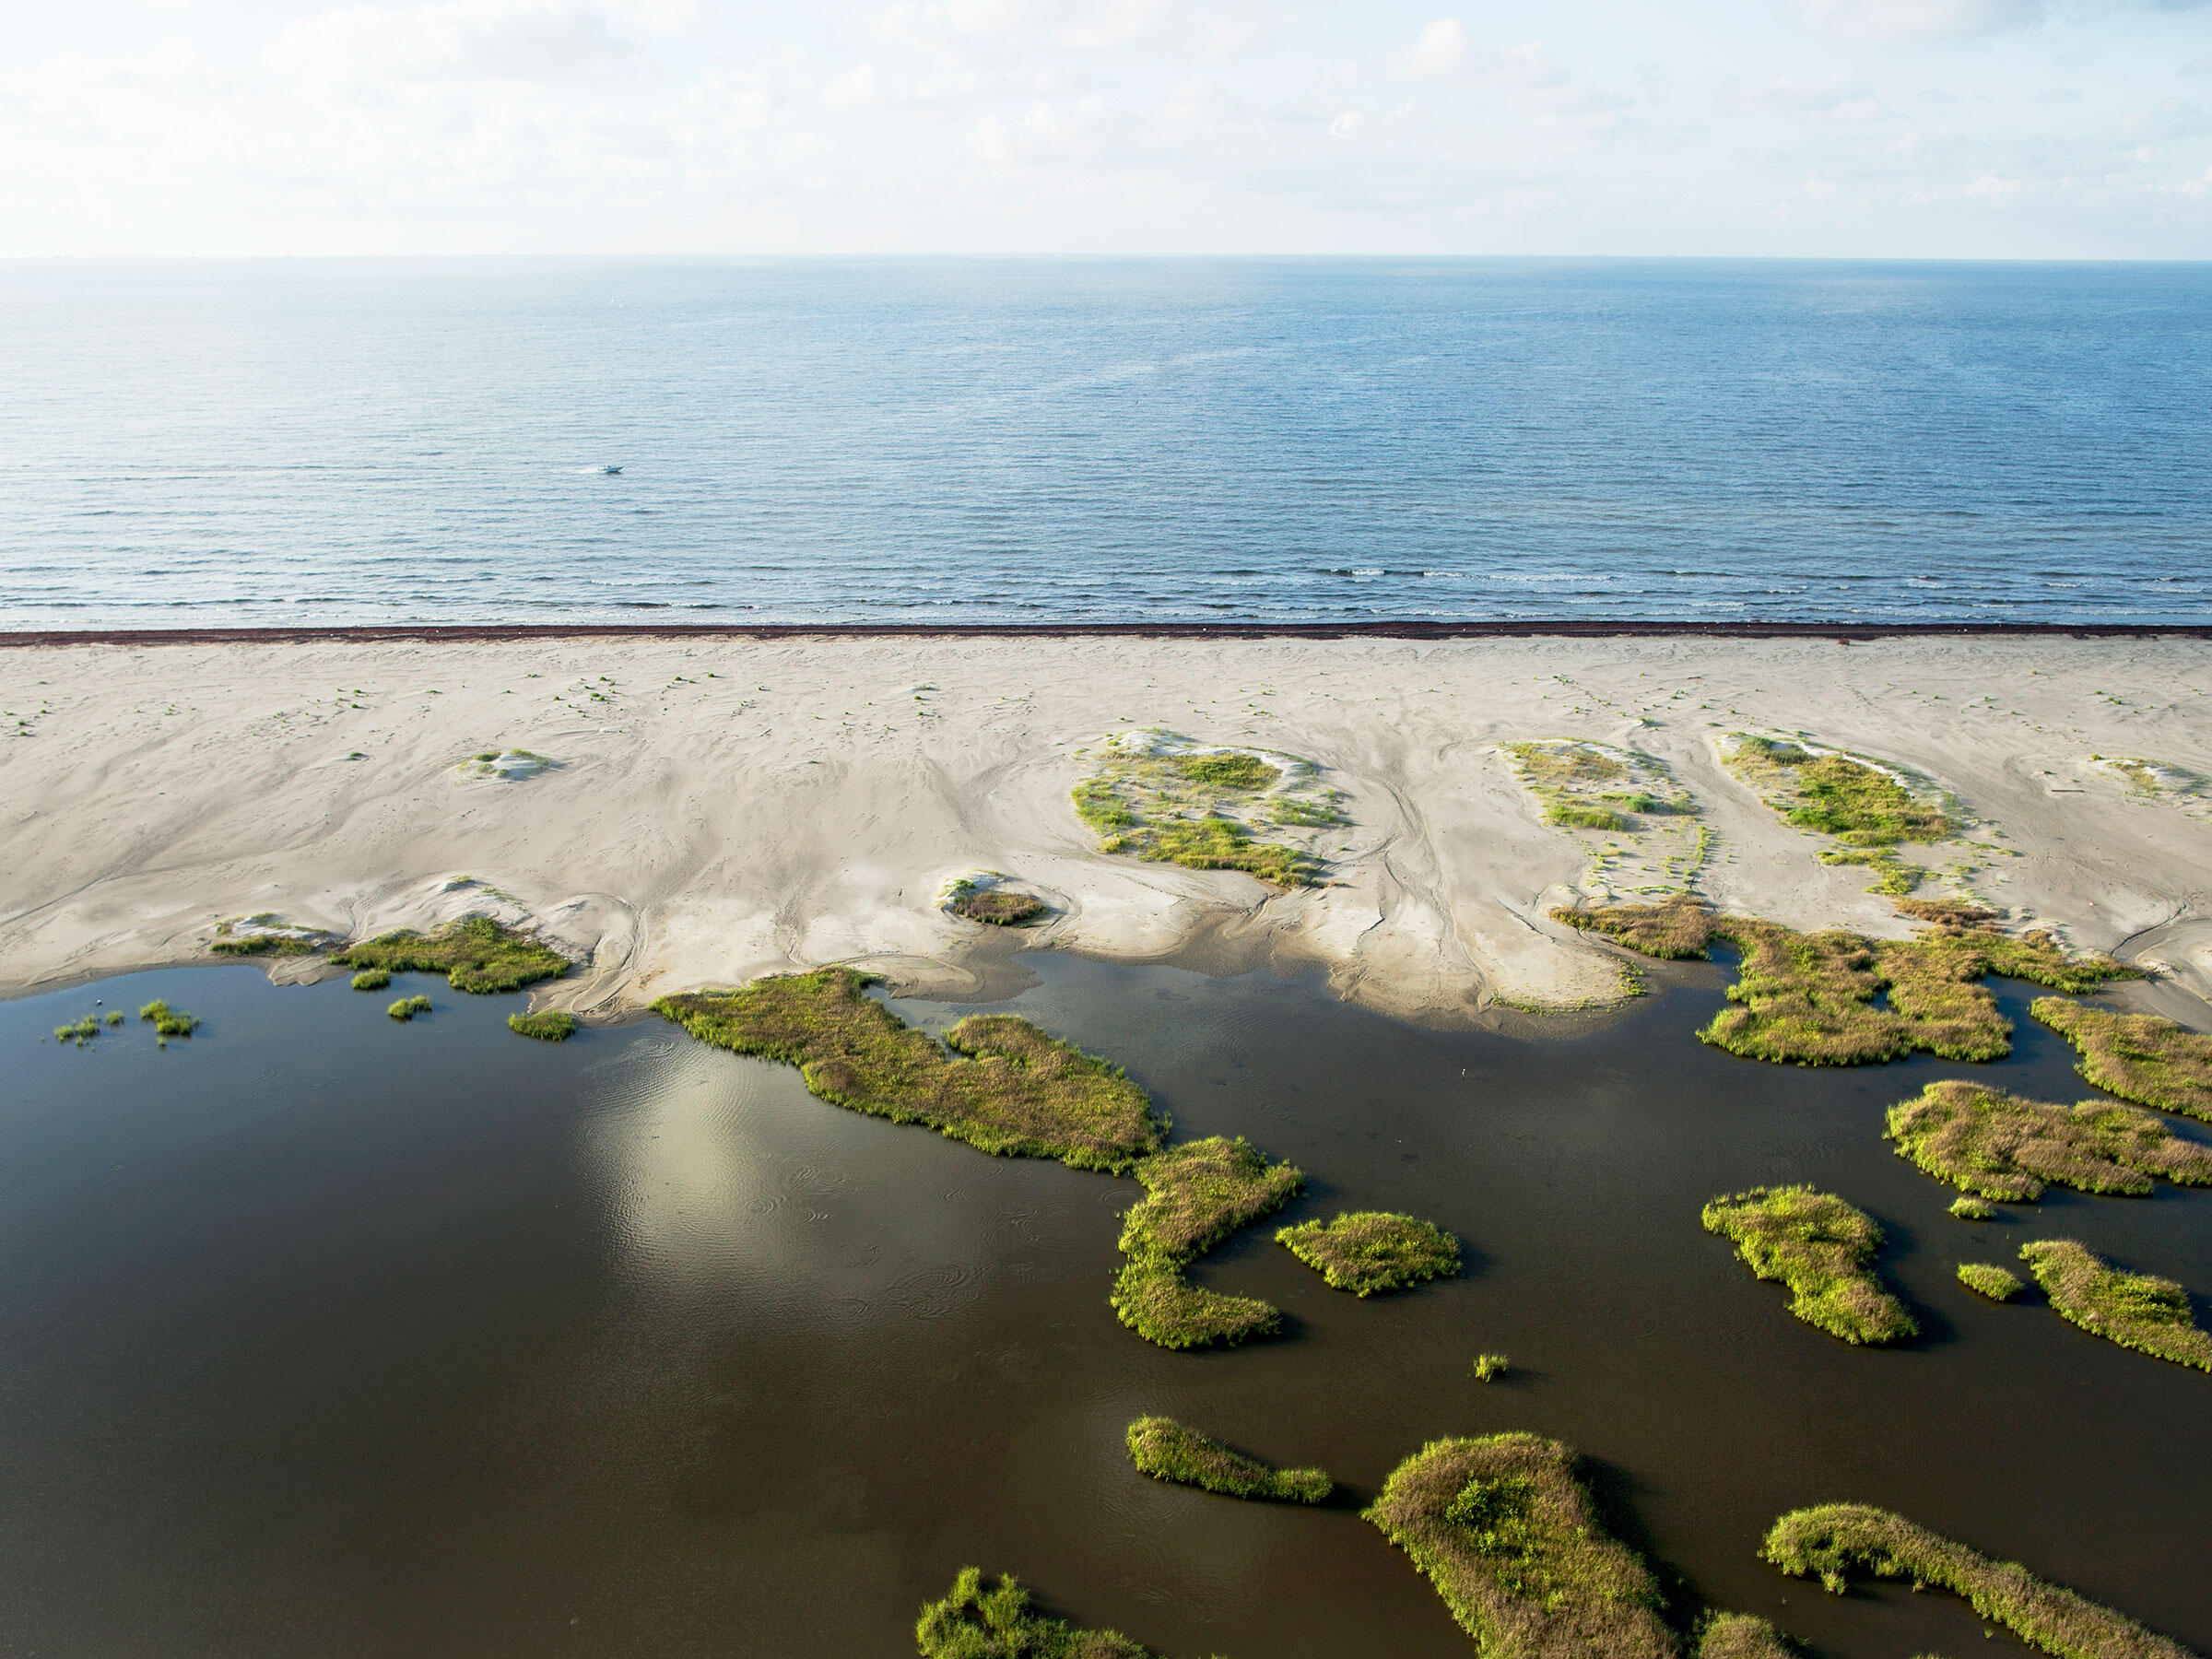 The newly restored Caminada Headland, a 13-mile-long barrier island system that buffers the Louisiana coast from tropical storms. Ben Depp